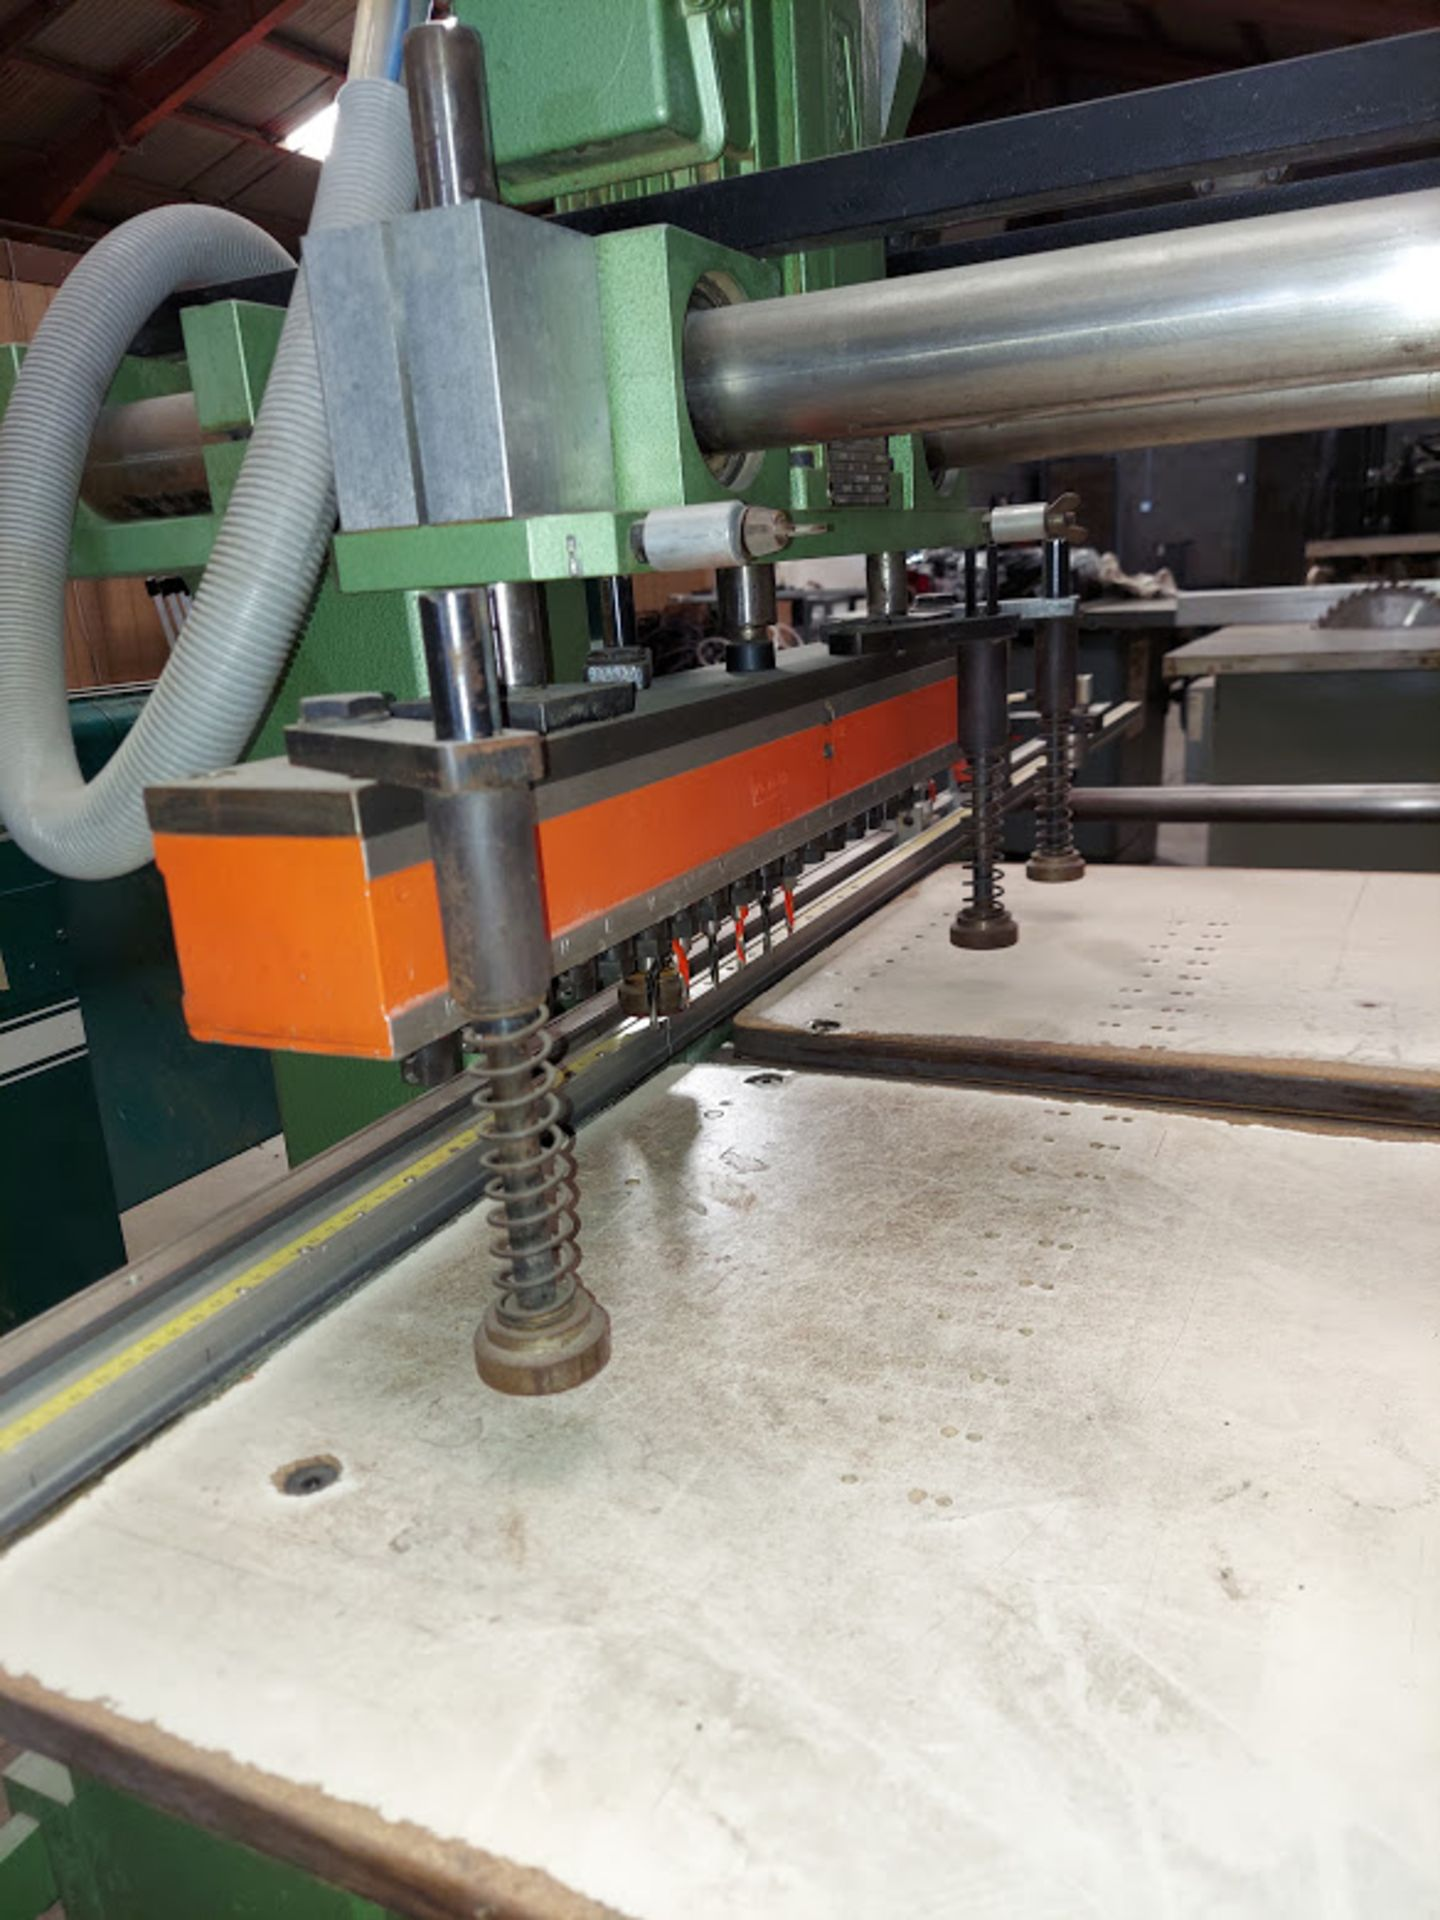 Ayen 21 Spindle Line Boaring Machine, Model #LRB 32-21, 230 Volts 3 Phase, Pneumatic foot peddle, - Image 5 of 5